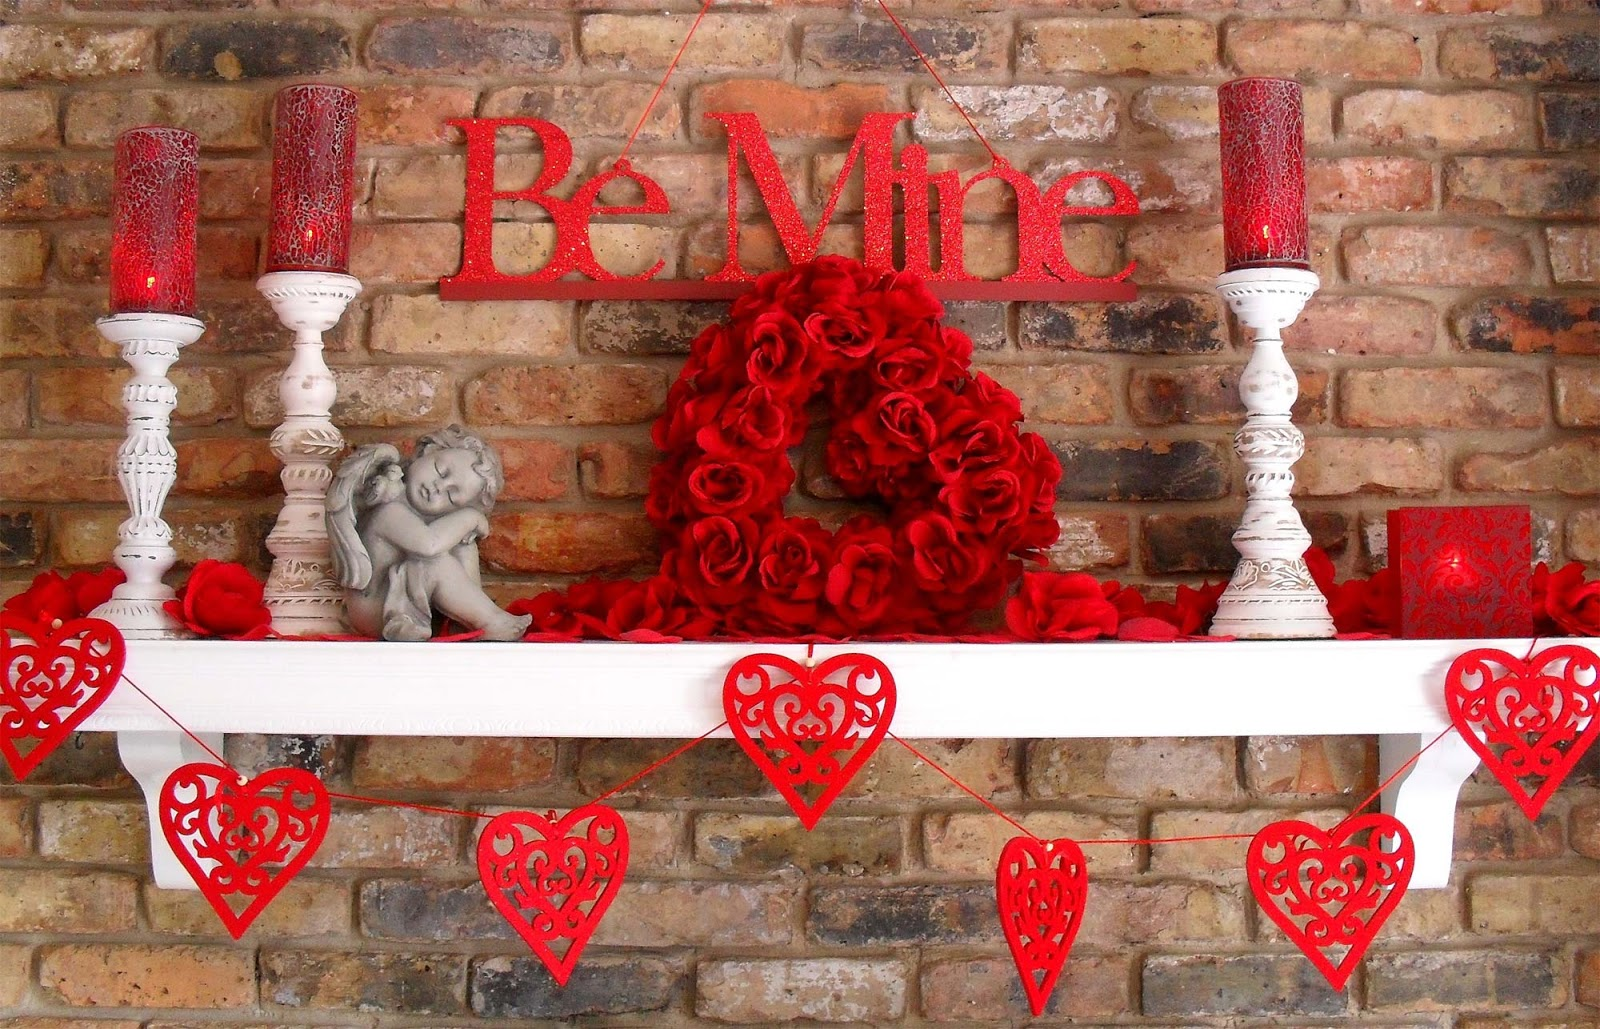 Valentine 39 s day decorations ideas 2016 to decorate bedroom for Decorate for valentines day